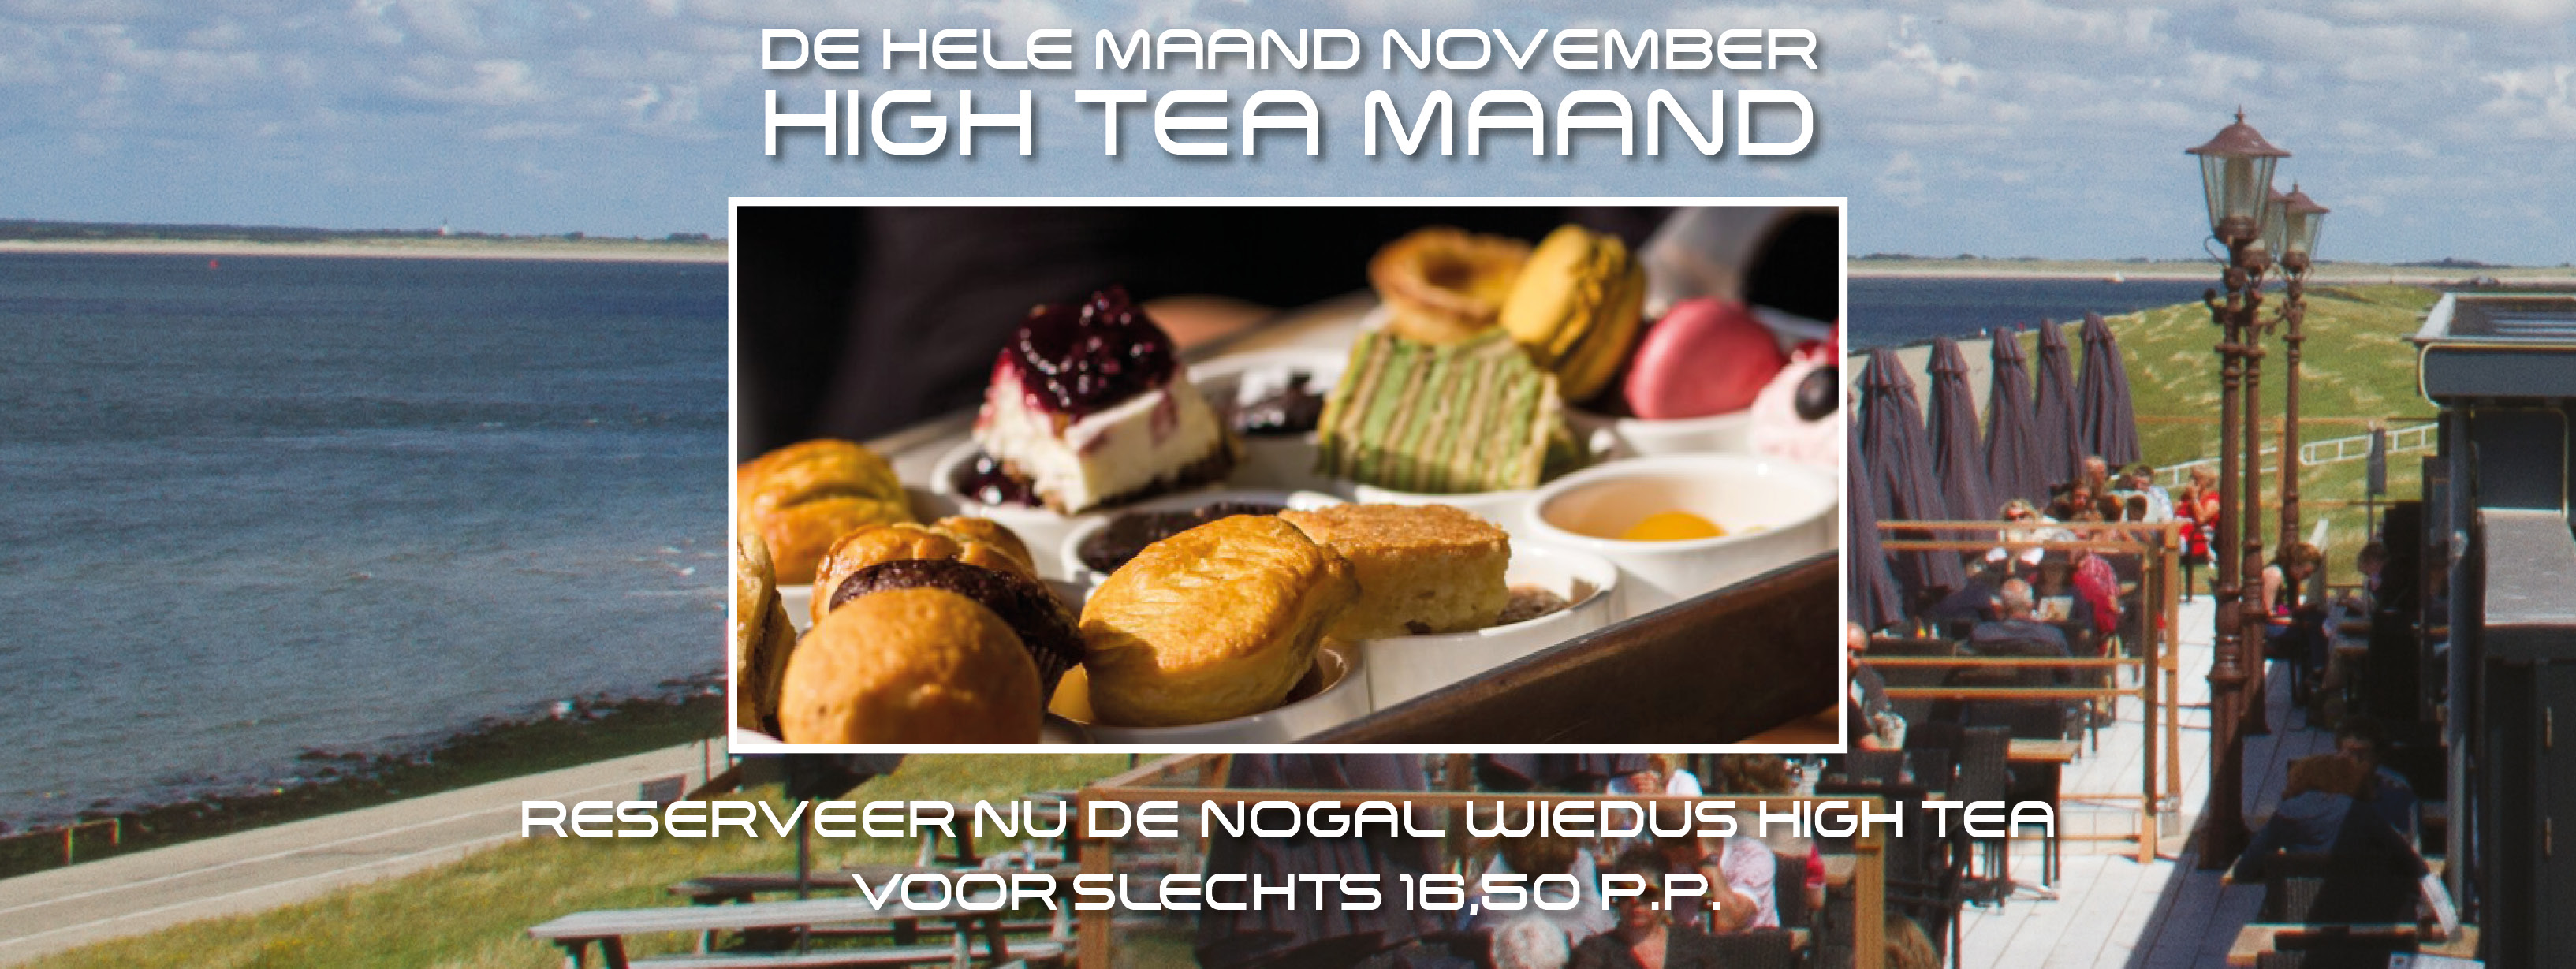 nw-facebook-high-tea-maand